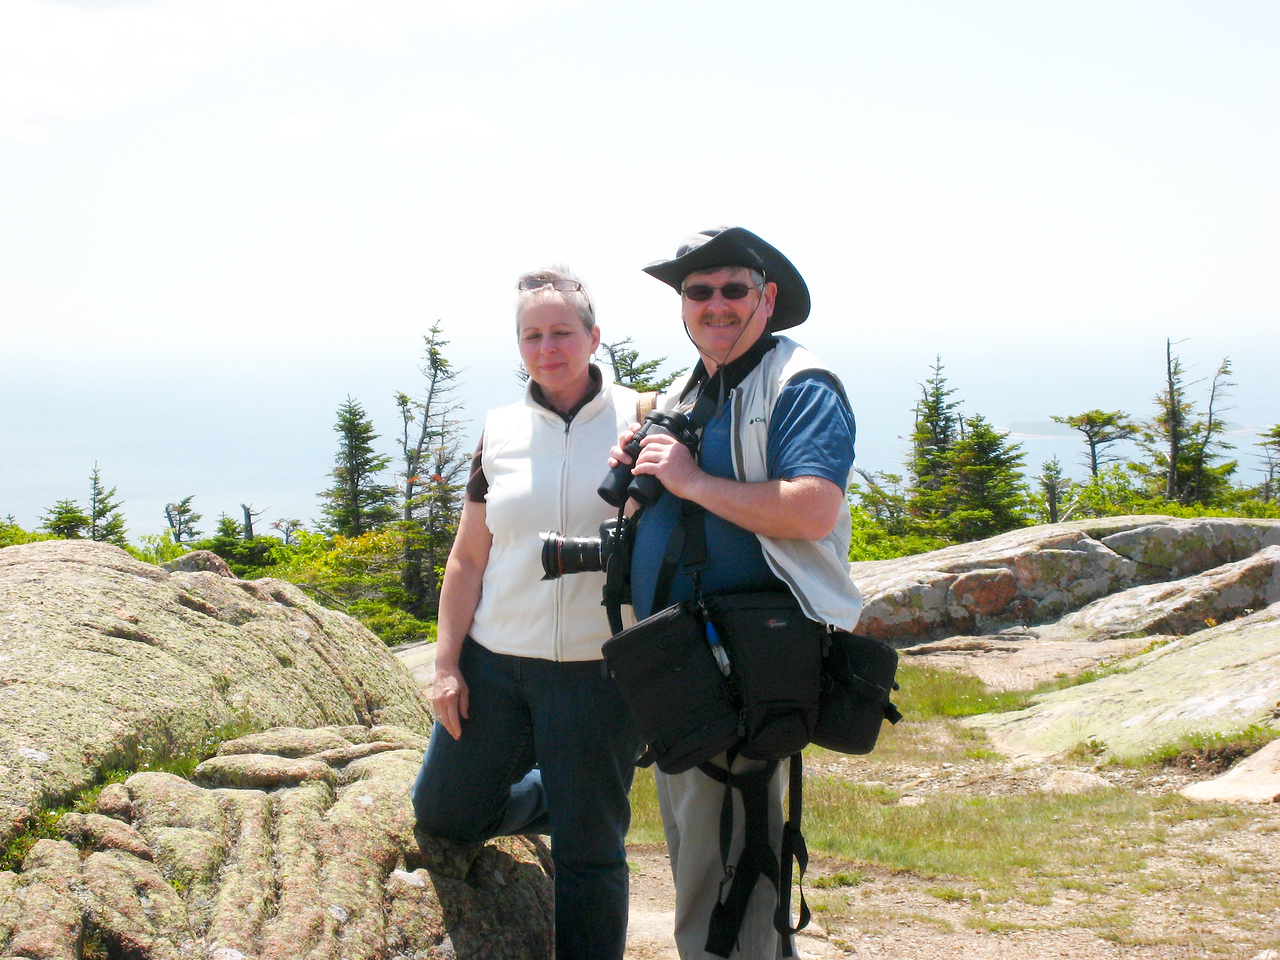 Cathy&Dave (me ) on top of Cadillac Mountain, Bar Harbor,Acadia National Park.